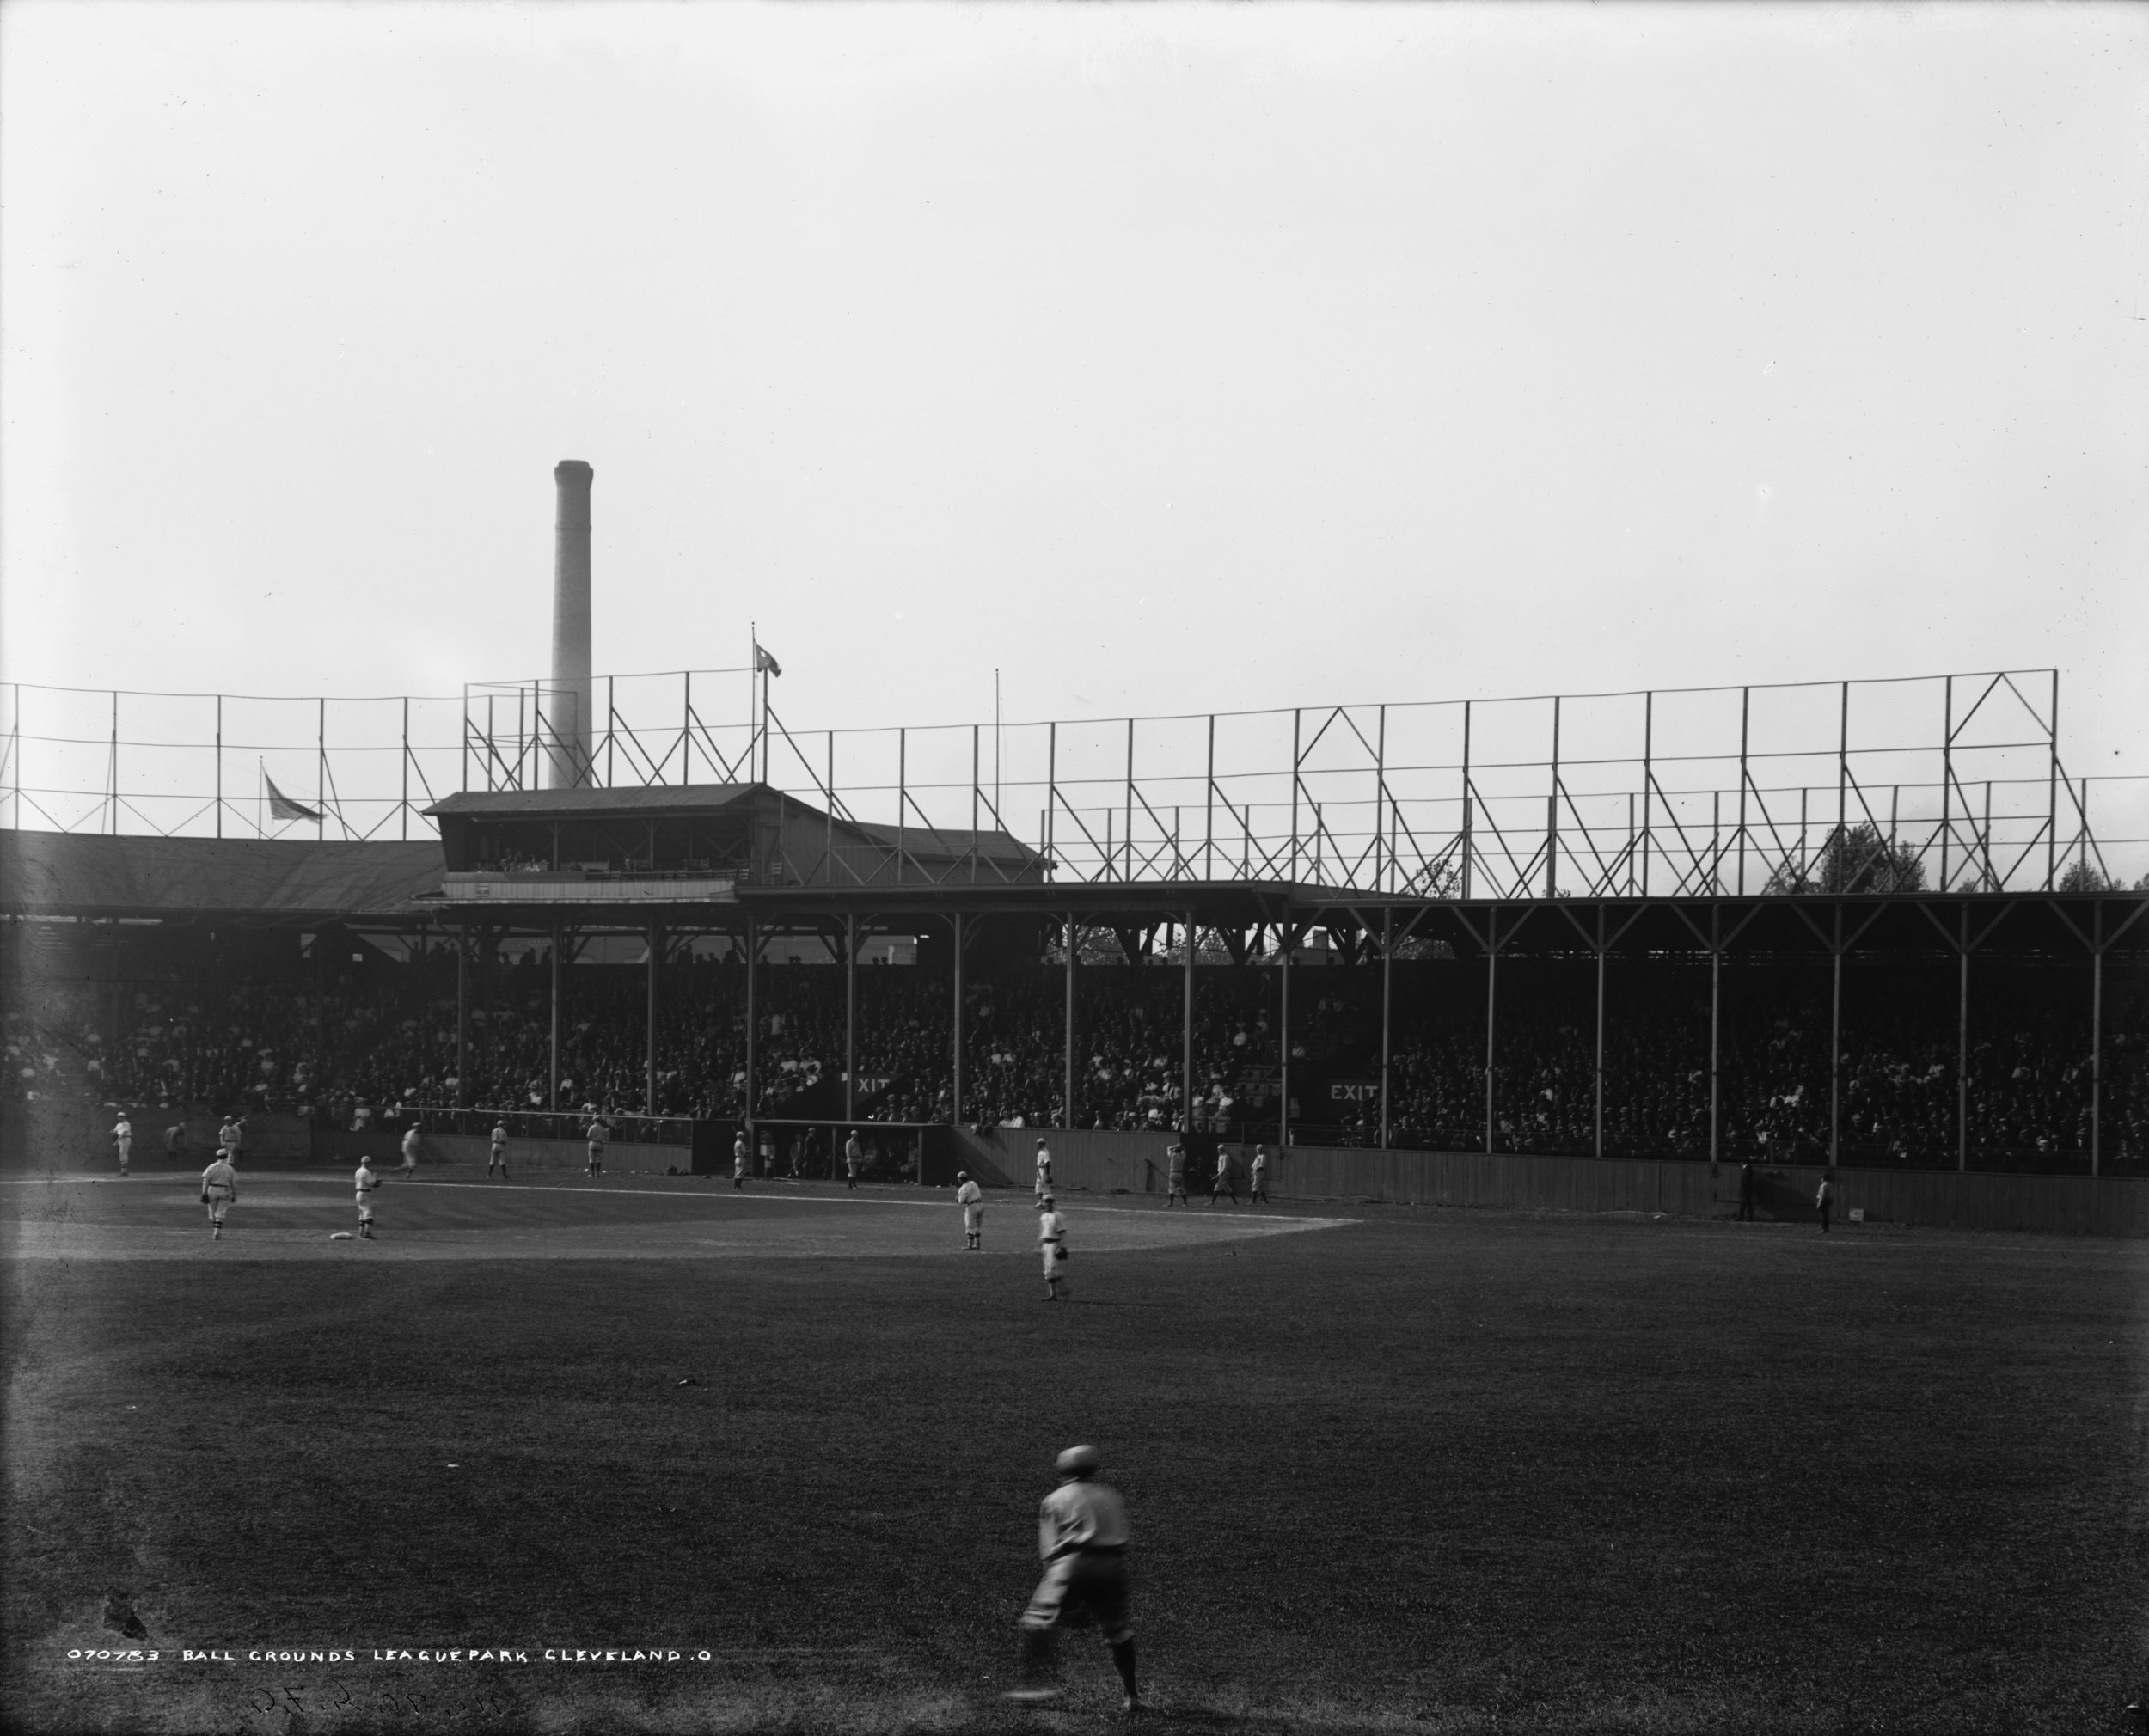 League_Park_Cleveland_ca._1905.jpg